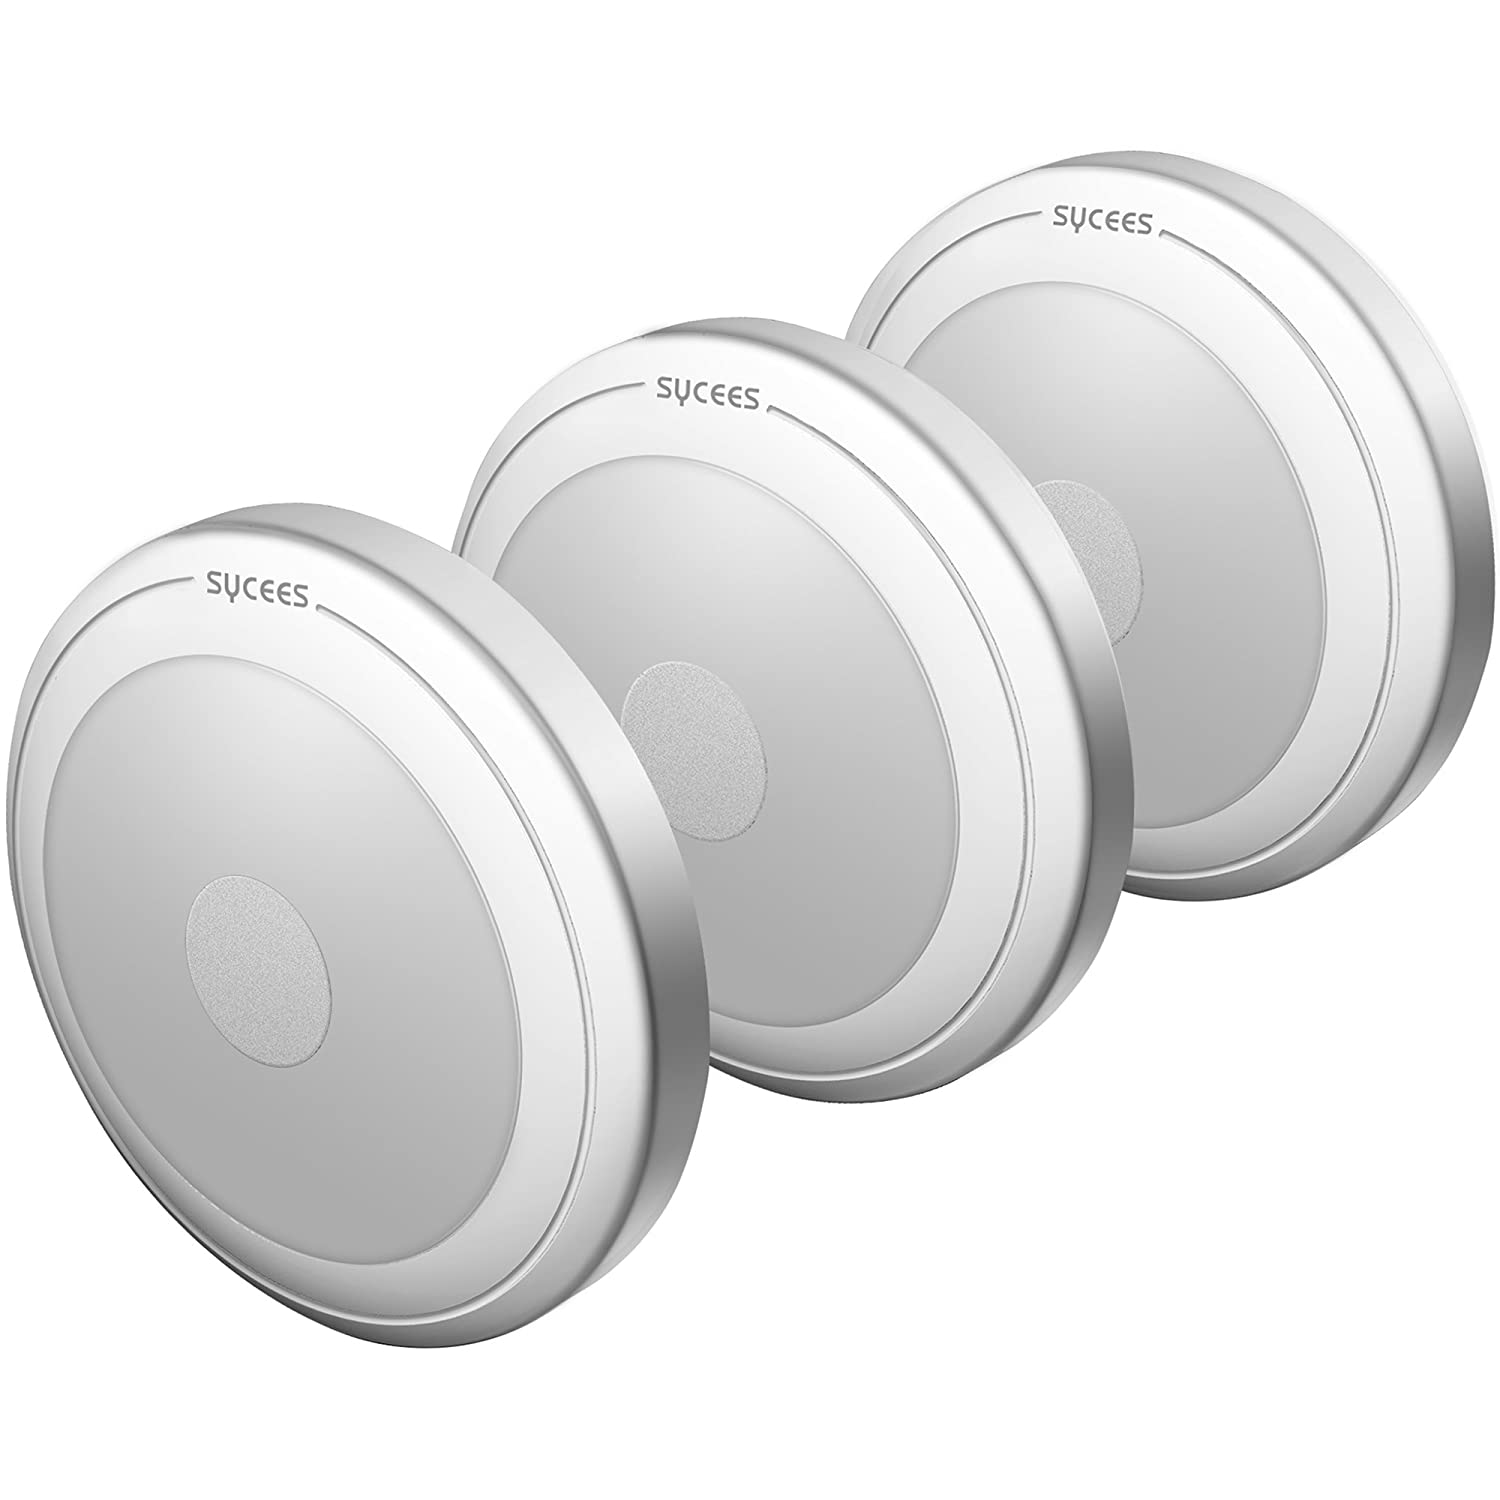 Sycees Touch Activated LED Puck Lights Dimmable Battery Operated Stick Anywhere Daylight White 3 Pack